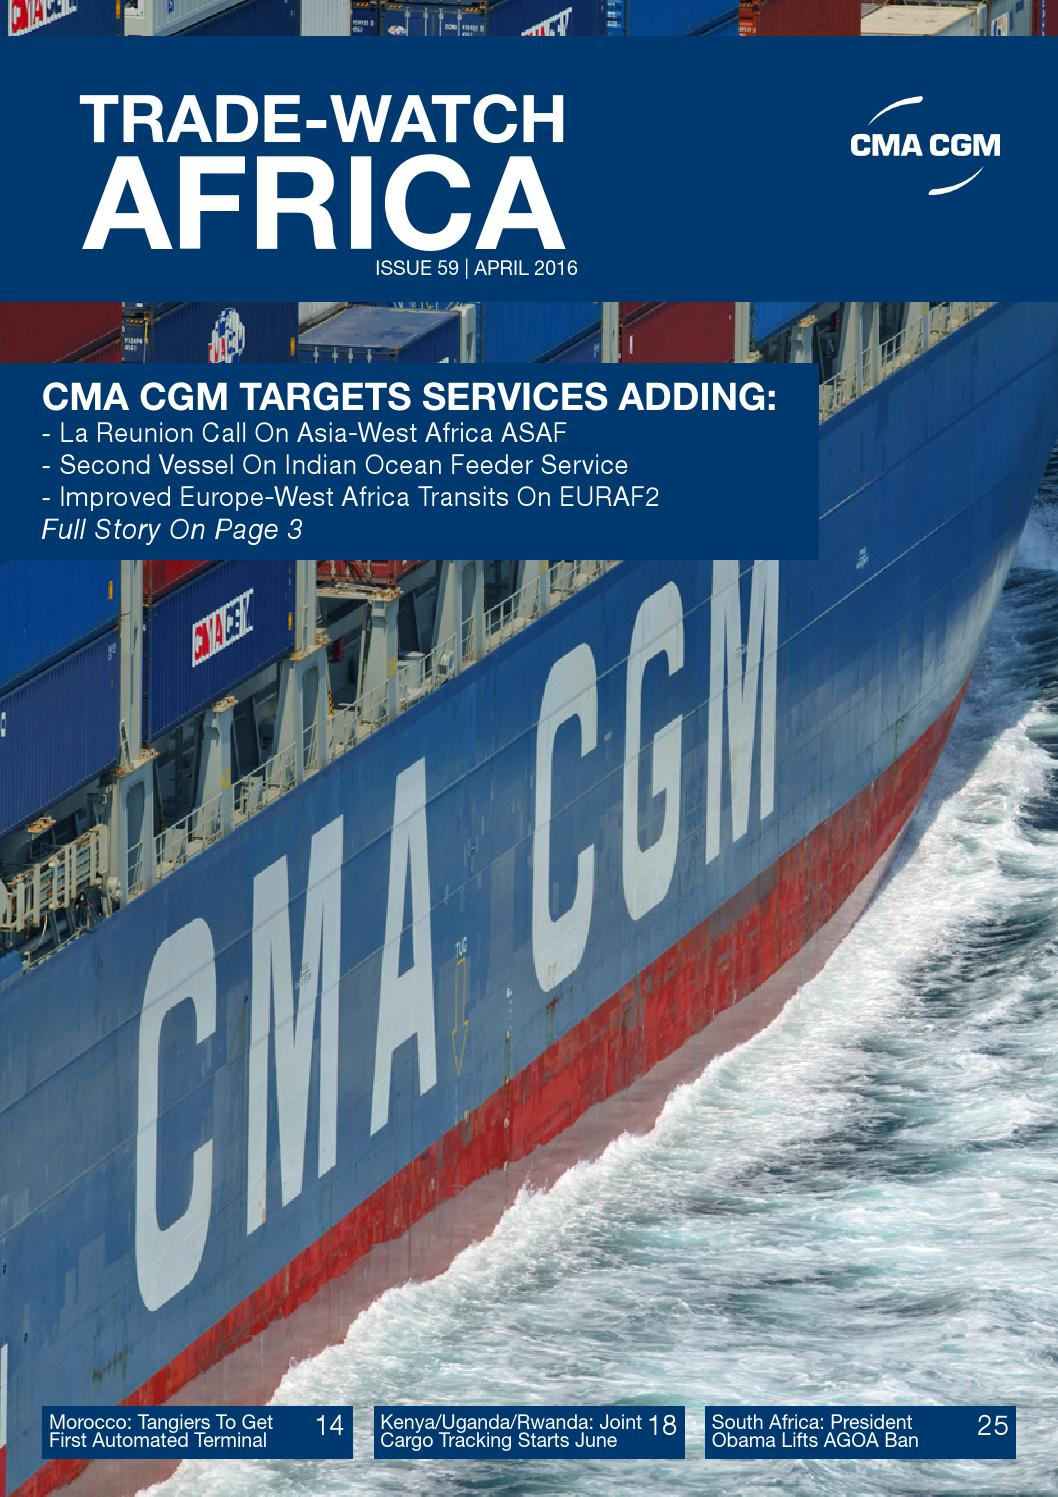 CMA CGM Trade-Watch - Issue 59 - April 2016 by CMA CGM Group